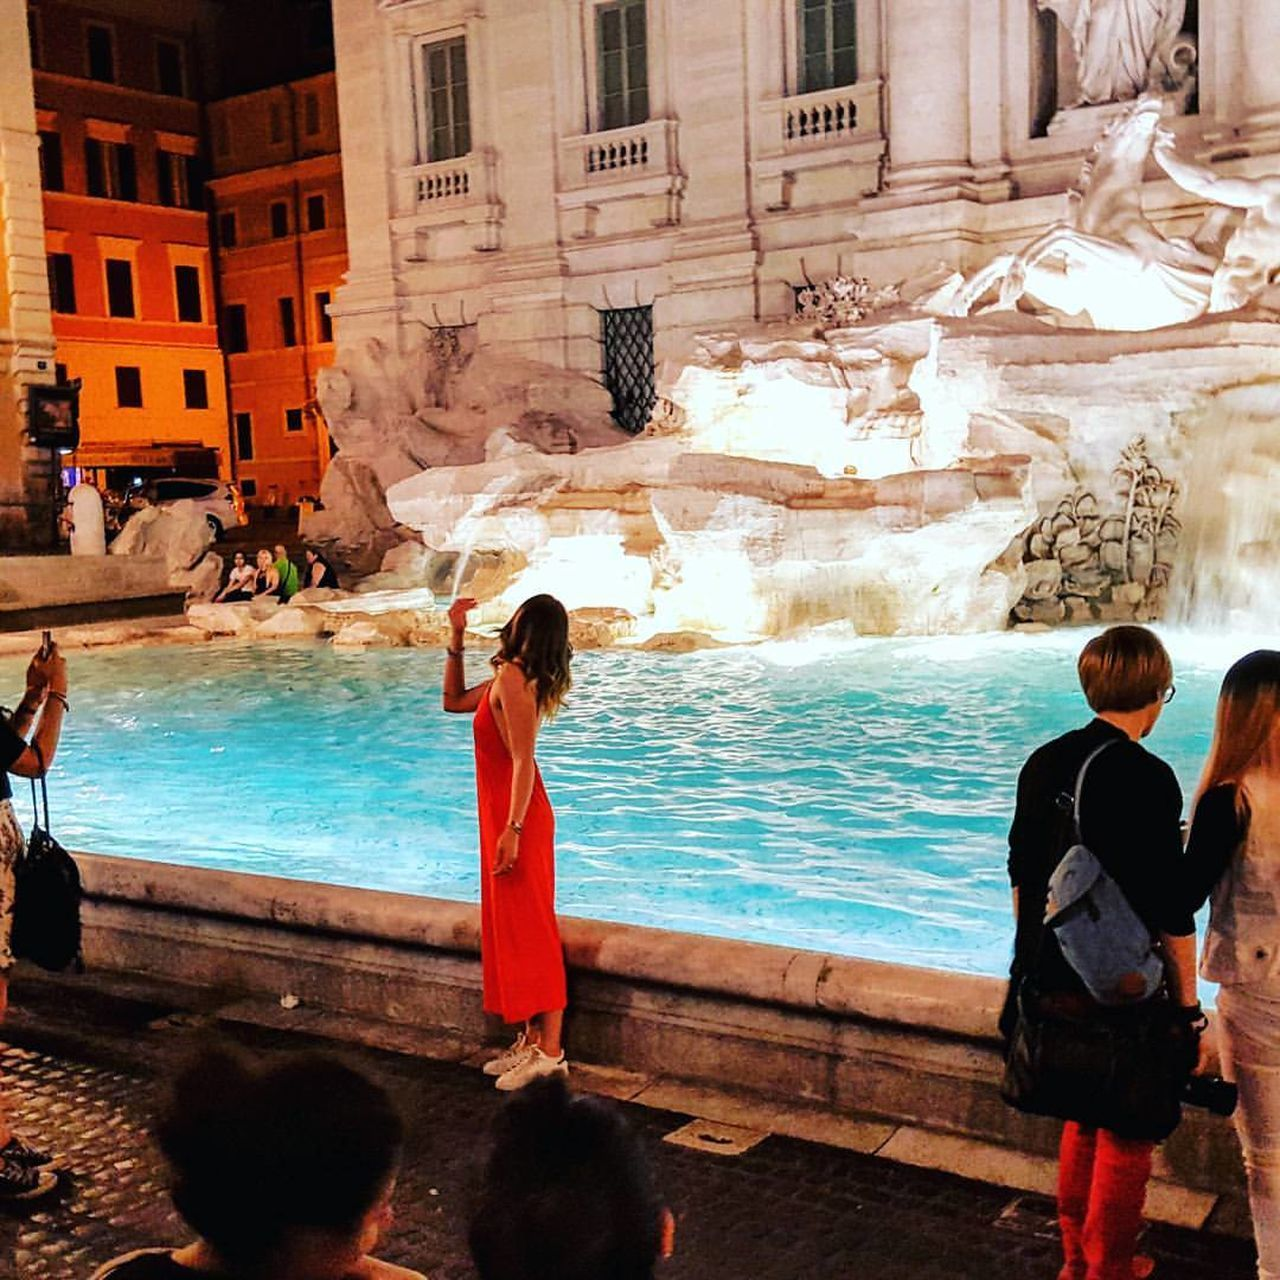 Water Travel Destinations Vacations Architecture Rome Italy TreviFountain Architectural Column Illuminated